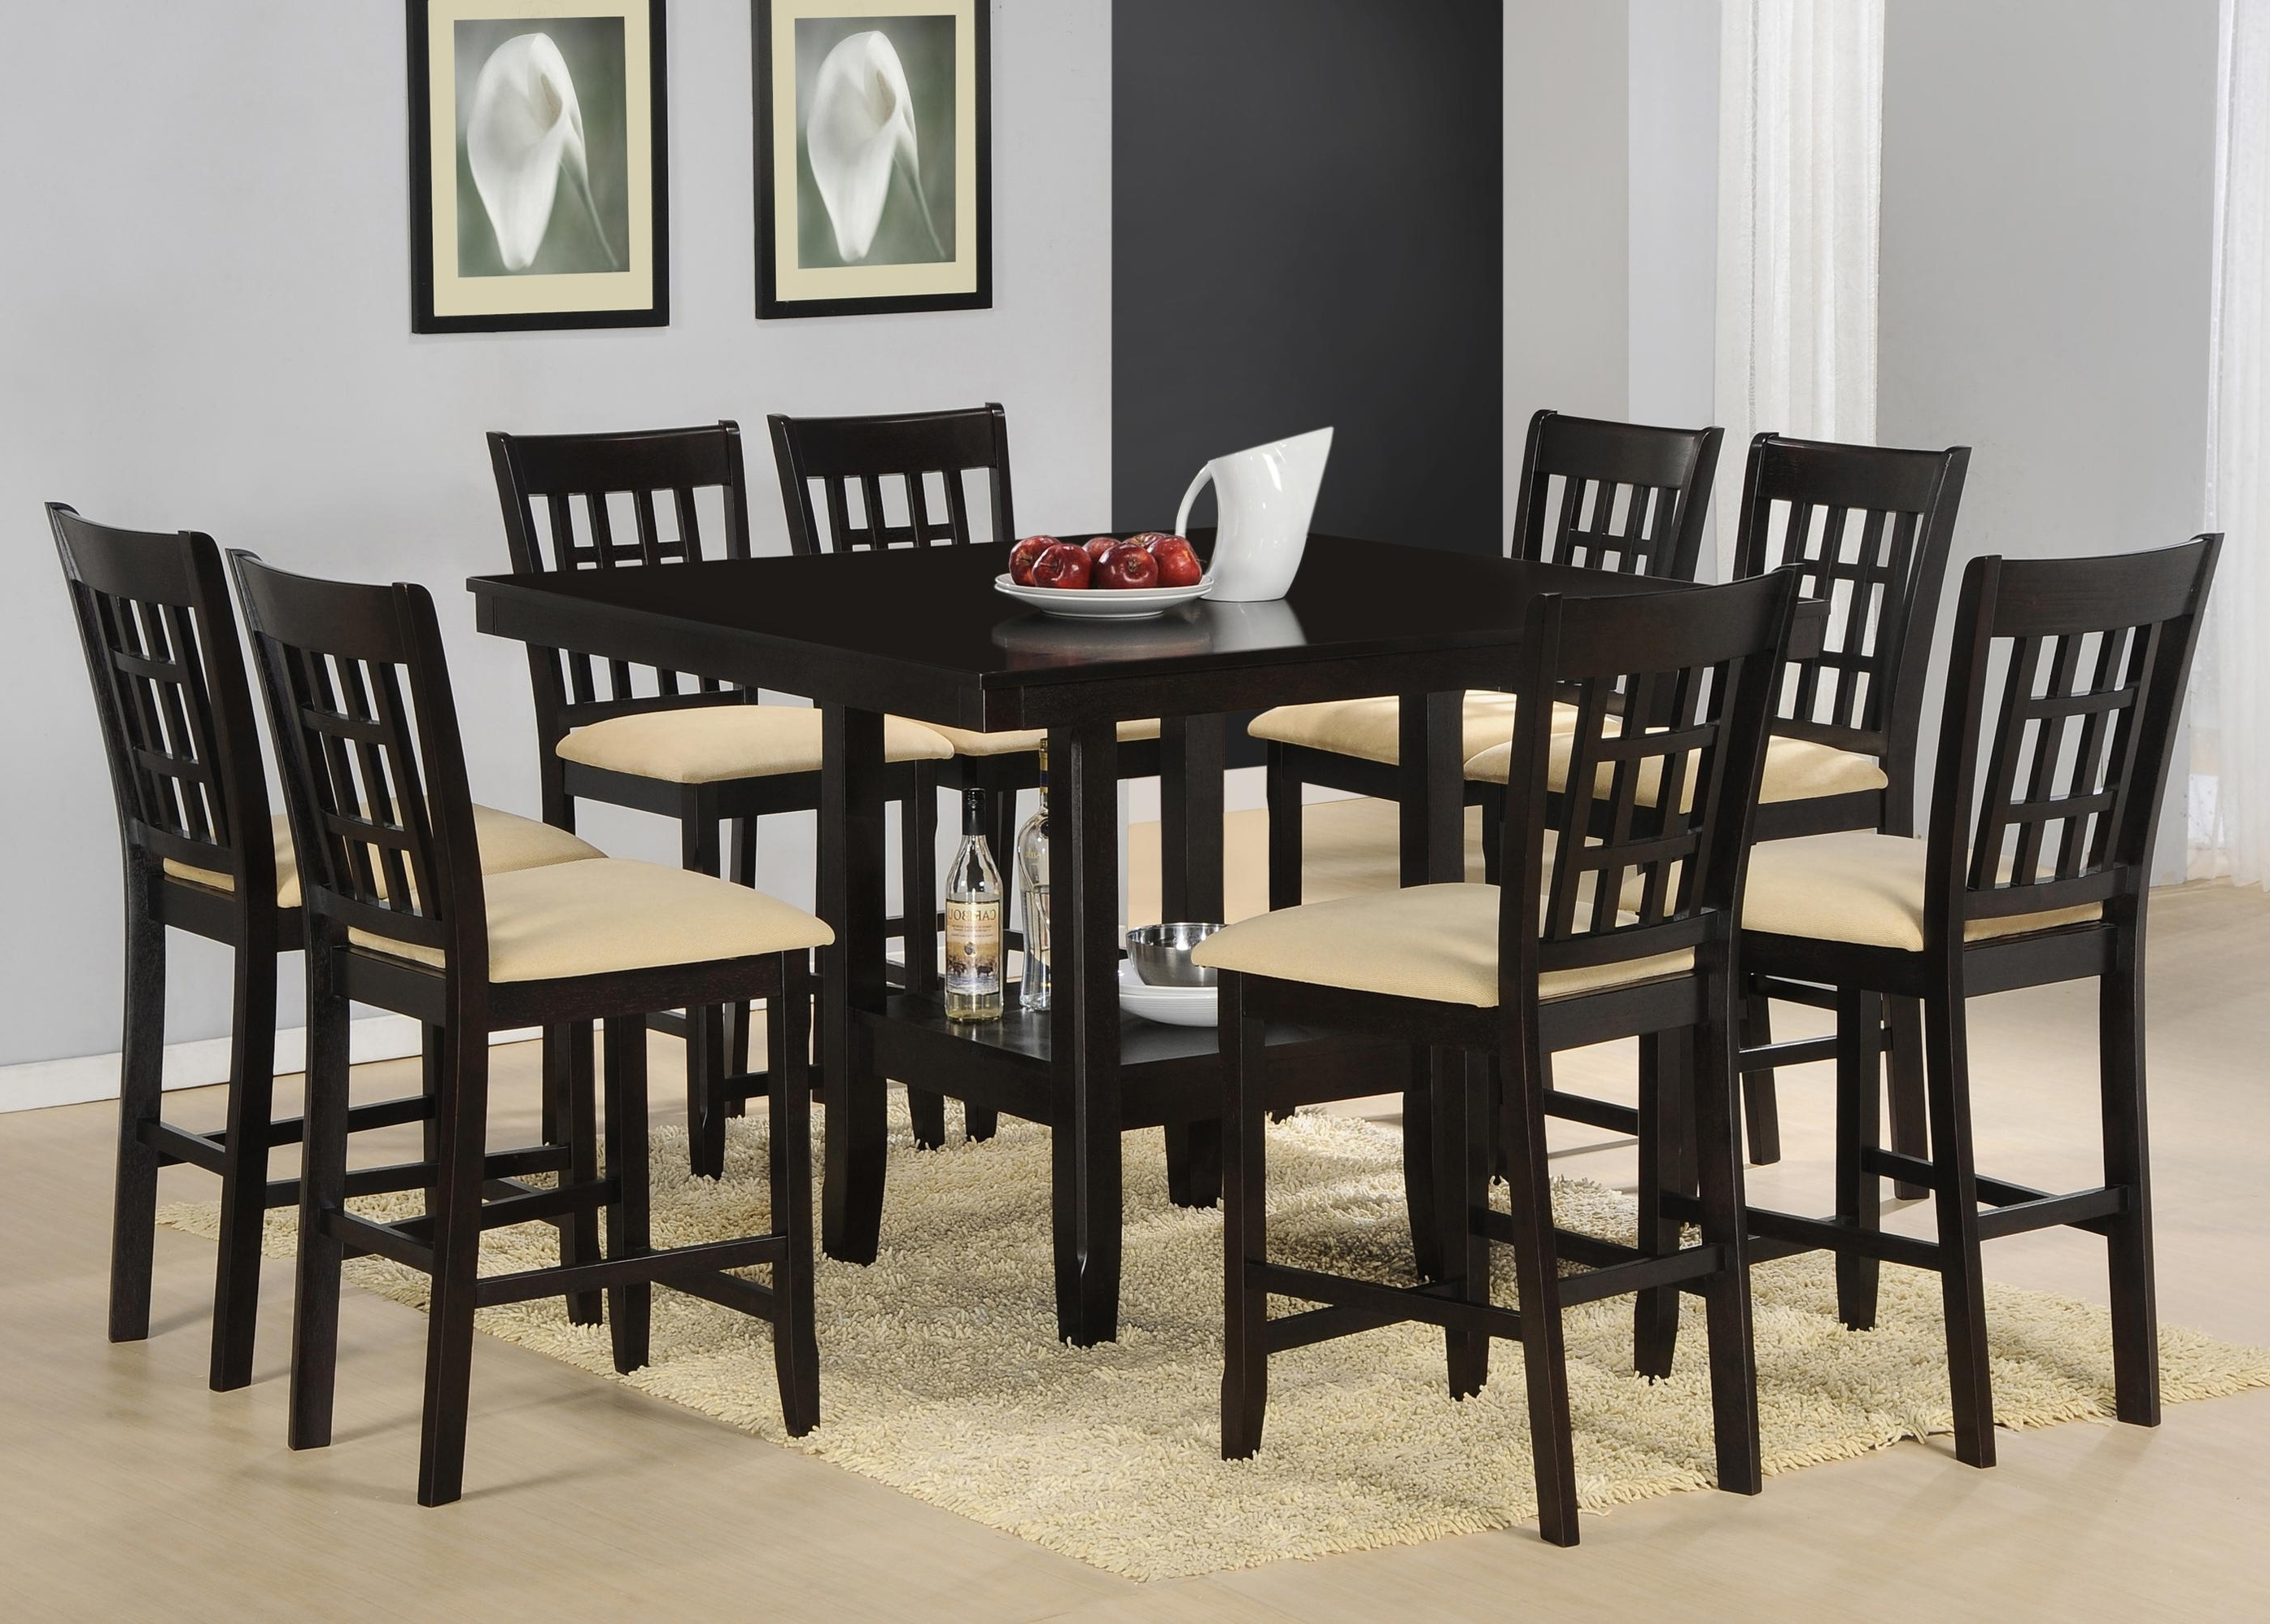 Recent Chapleau Ii 9 Piece Extension Dining Table Sets For Cheery Caira Piece Extension Set Back Chairs Caira Piece Extension (View 24 of 25)